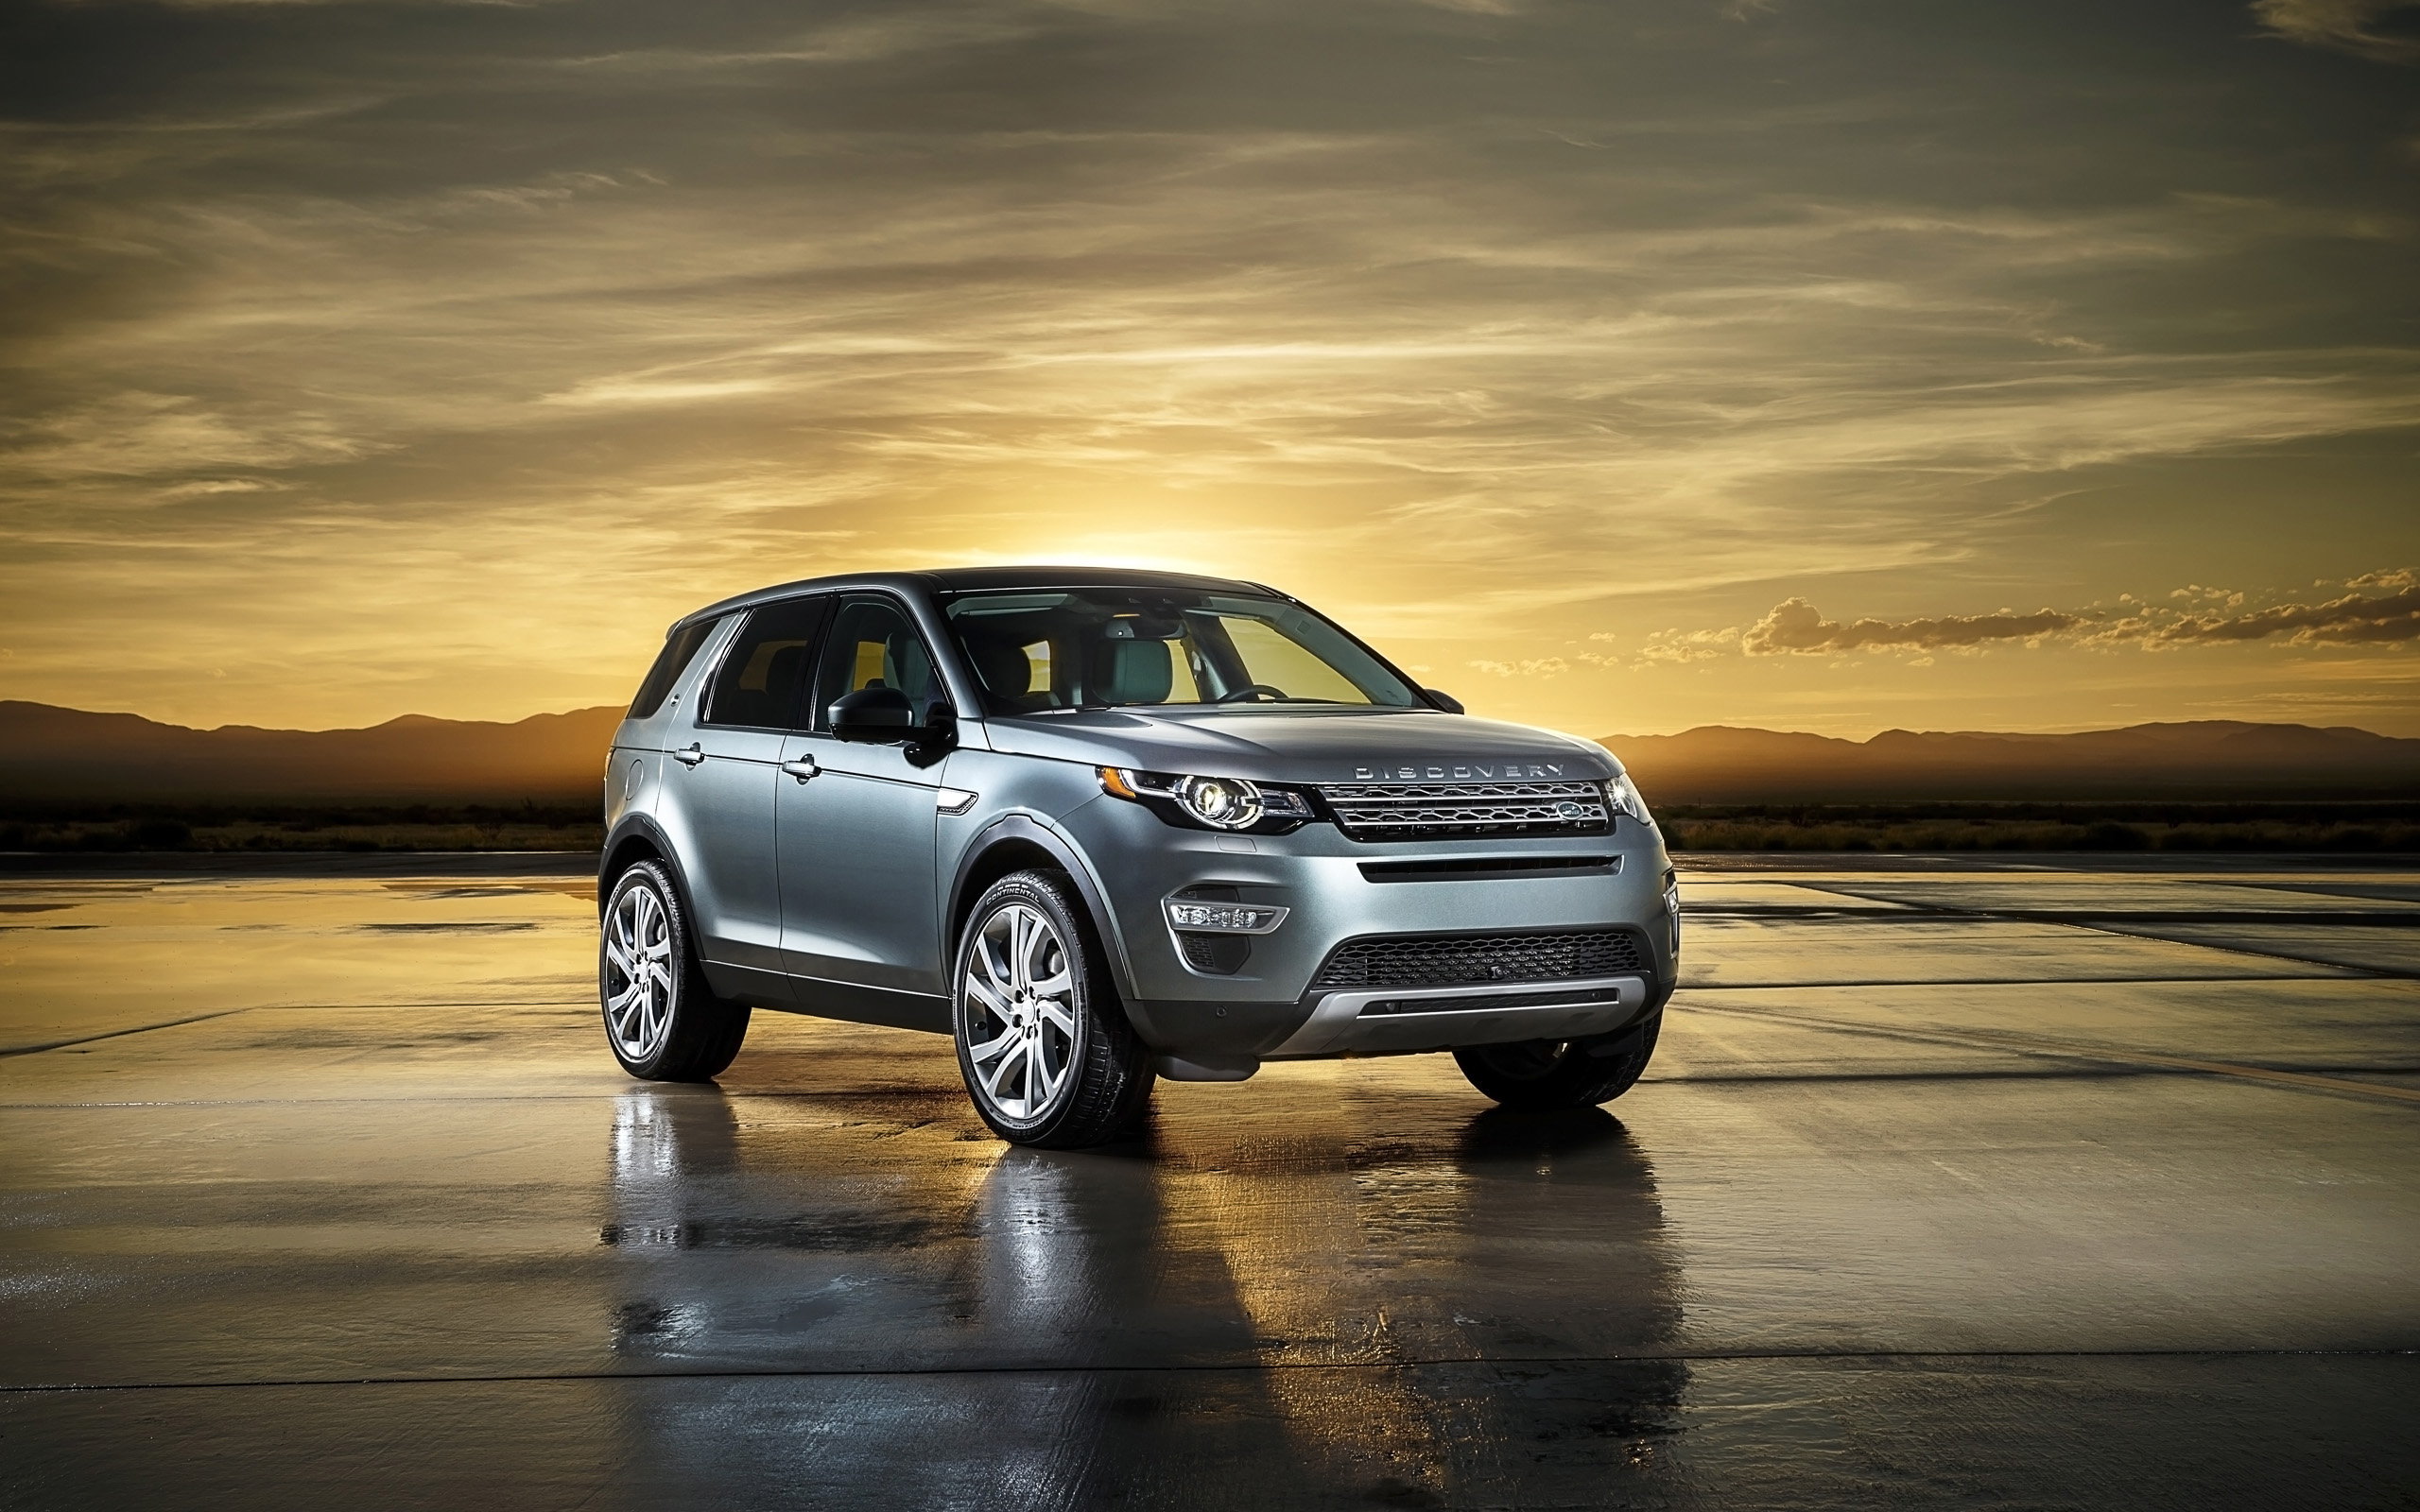 2015 land rover discovery sport 3 wallpaper hd car. Black Bedroom Furniture Sets. Home Design Ideas